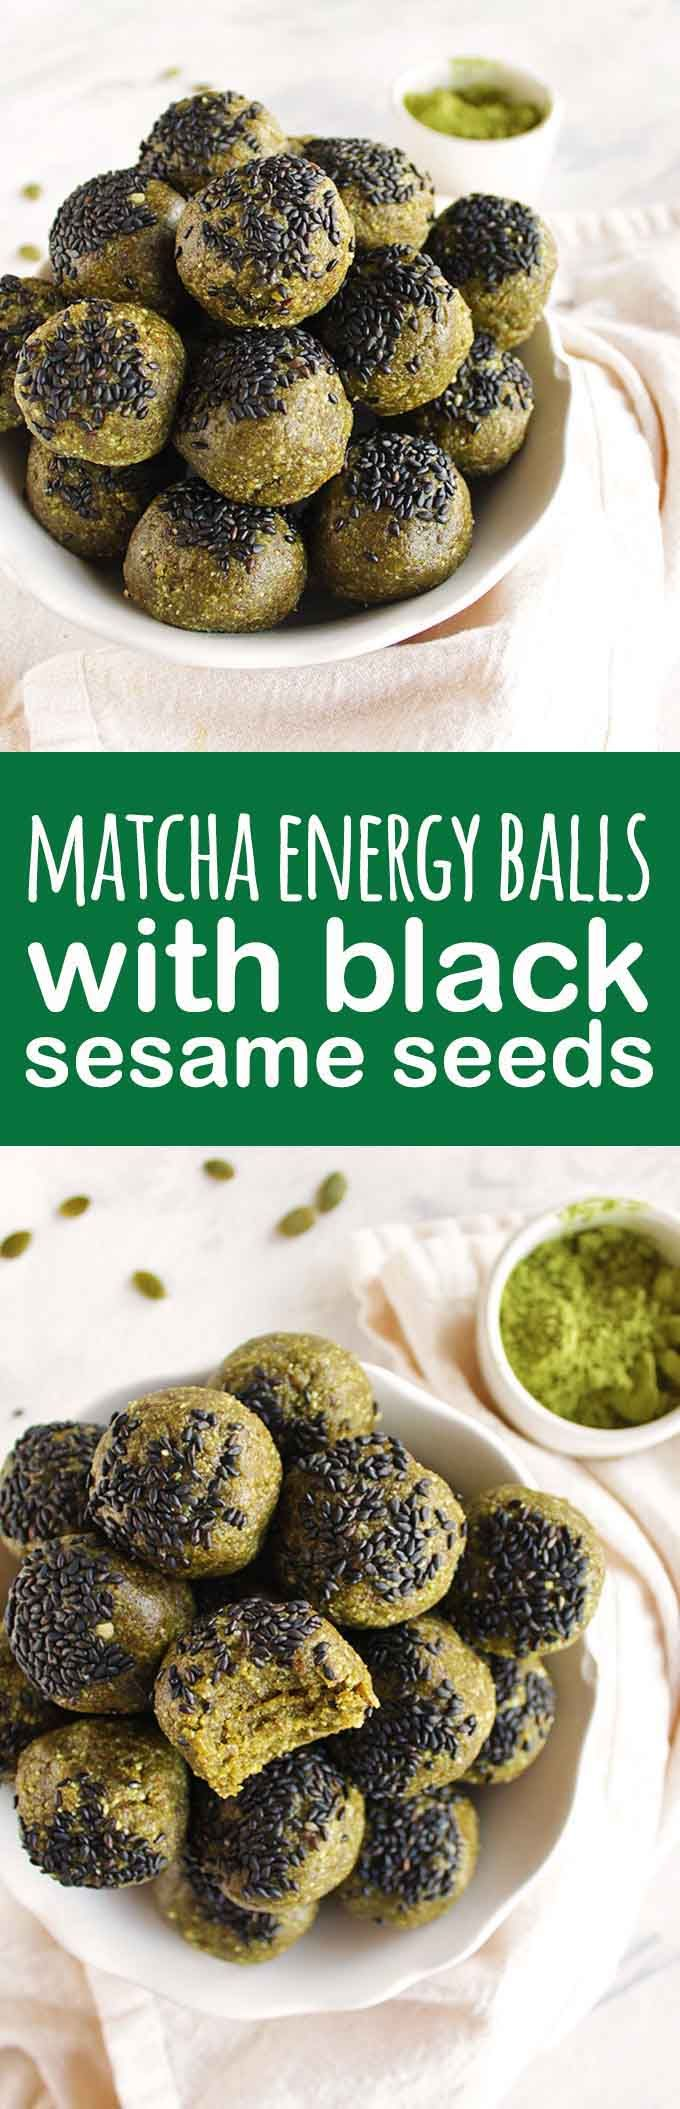 Matcha energy balls with black sesame seeds are nutrient dense: rich in antioxidants, healthy fats, and fiber to keep you going. They make the perfect snack any time of day! (gluten Free/vegan/vegetarian) | robustrecipes.com